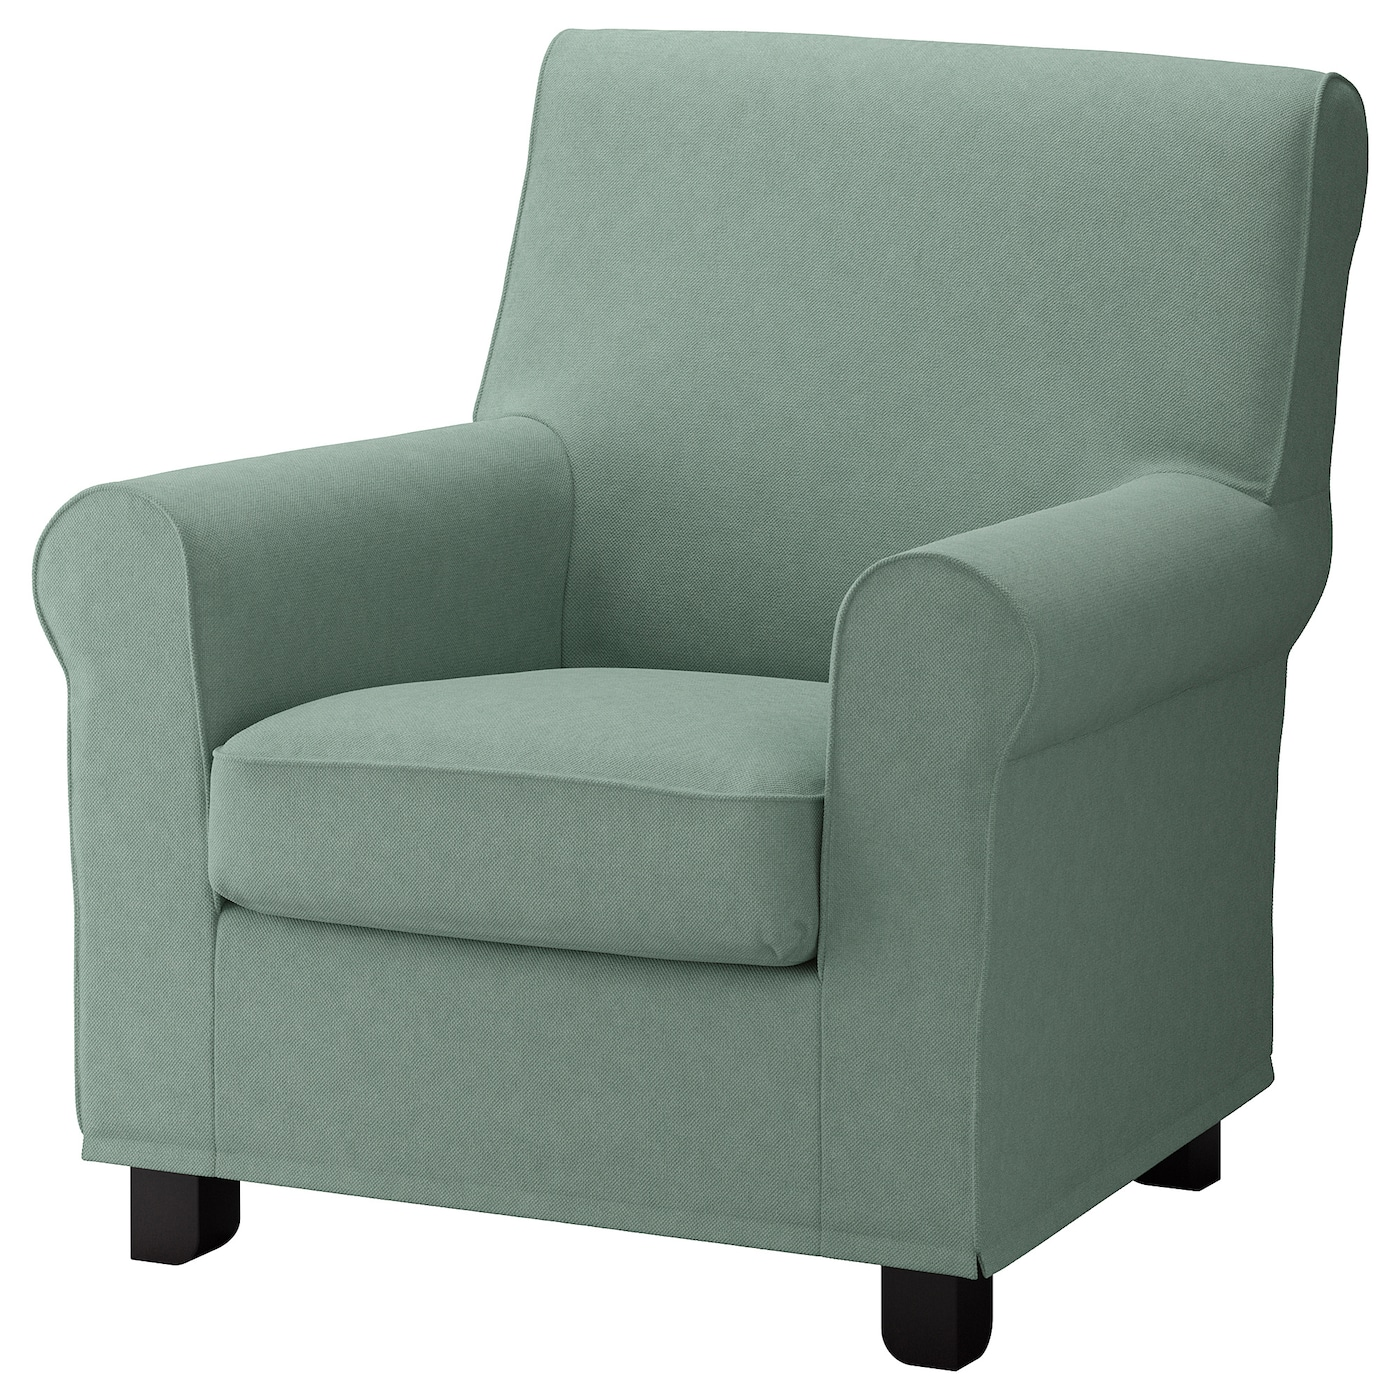 Ikea GrÖnlid Armchair The Cover Is Easy To Keep Clean Since It Removable And Machine